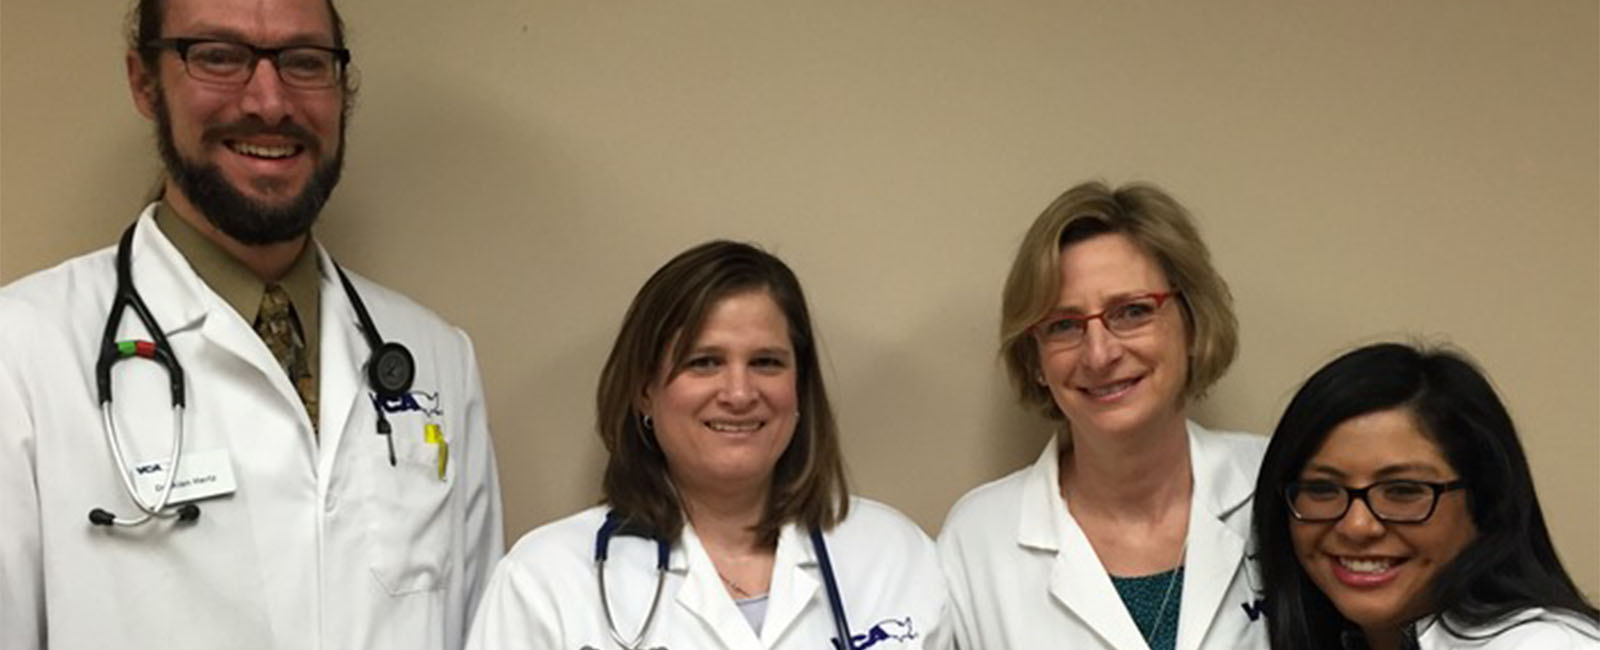 Homepage Team Picture of VCA Aurora Animal Hospital